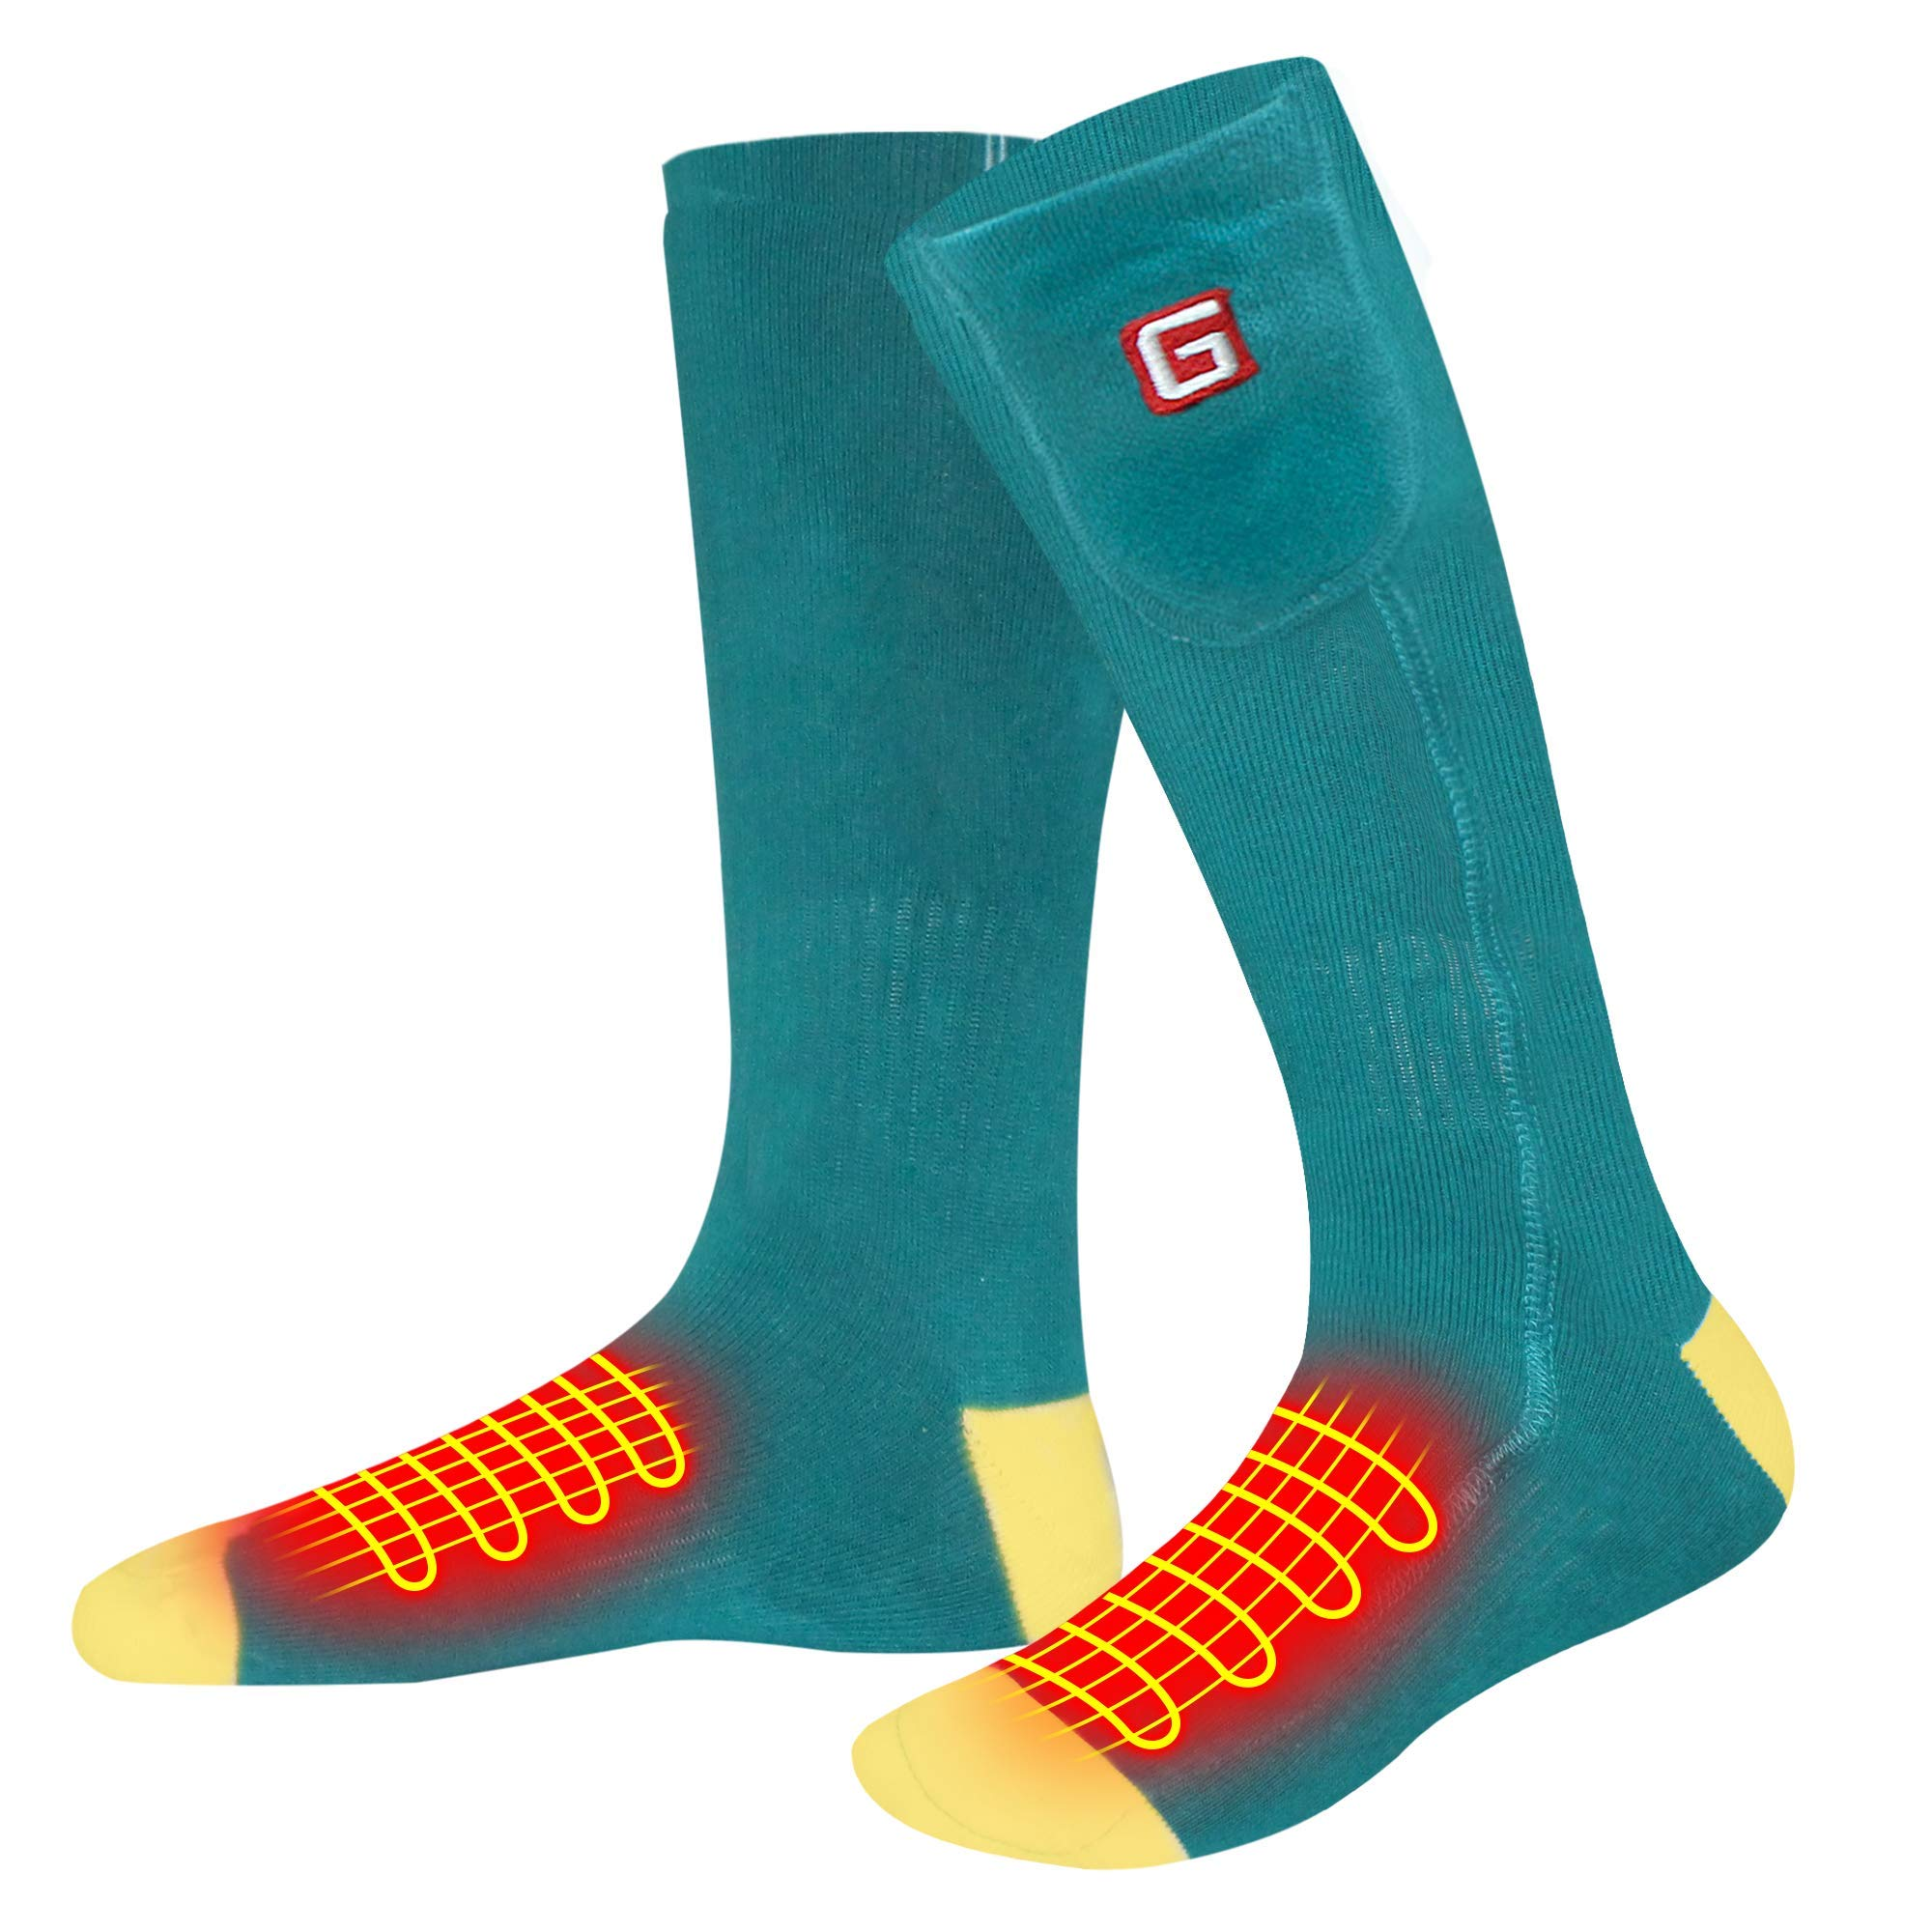 QILOVE Electric Heated Socks,Rechargeable Battery Powered Men Women Warming Socks Hosiery Extreme Cold Weather Socks,Heat Foot Warmers Sox for Outdoor Sports Motorcycle by QILOVE